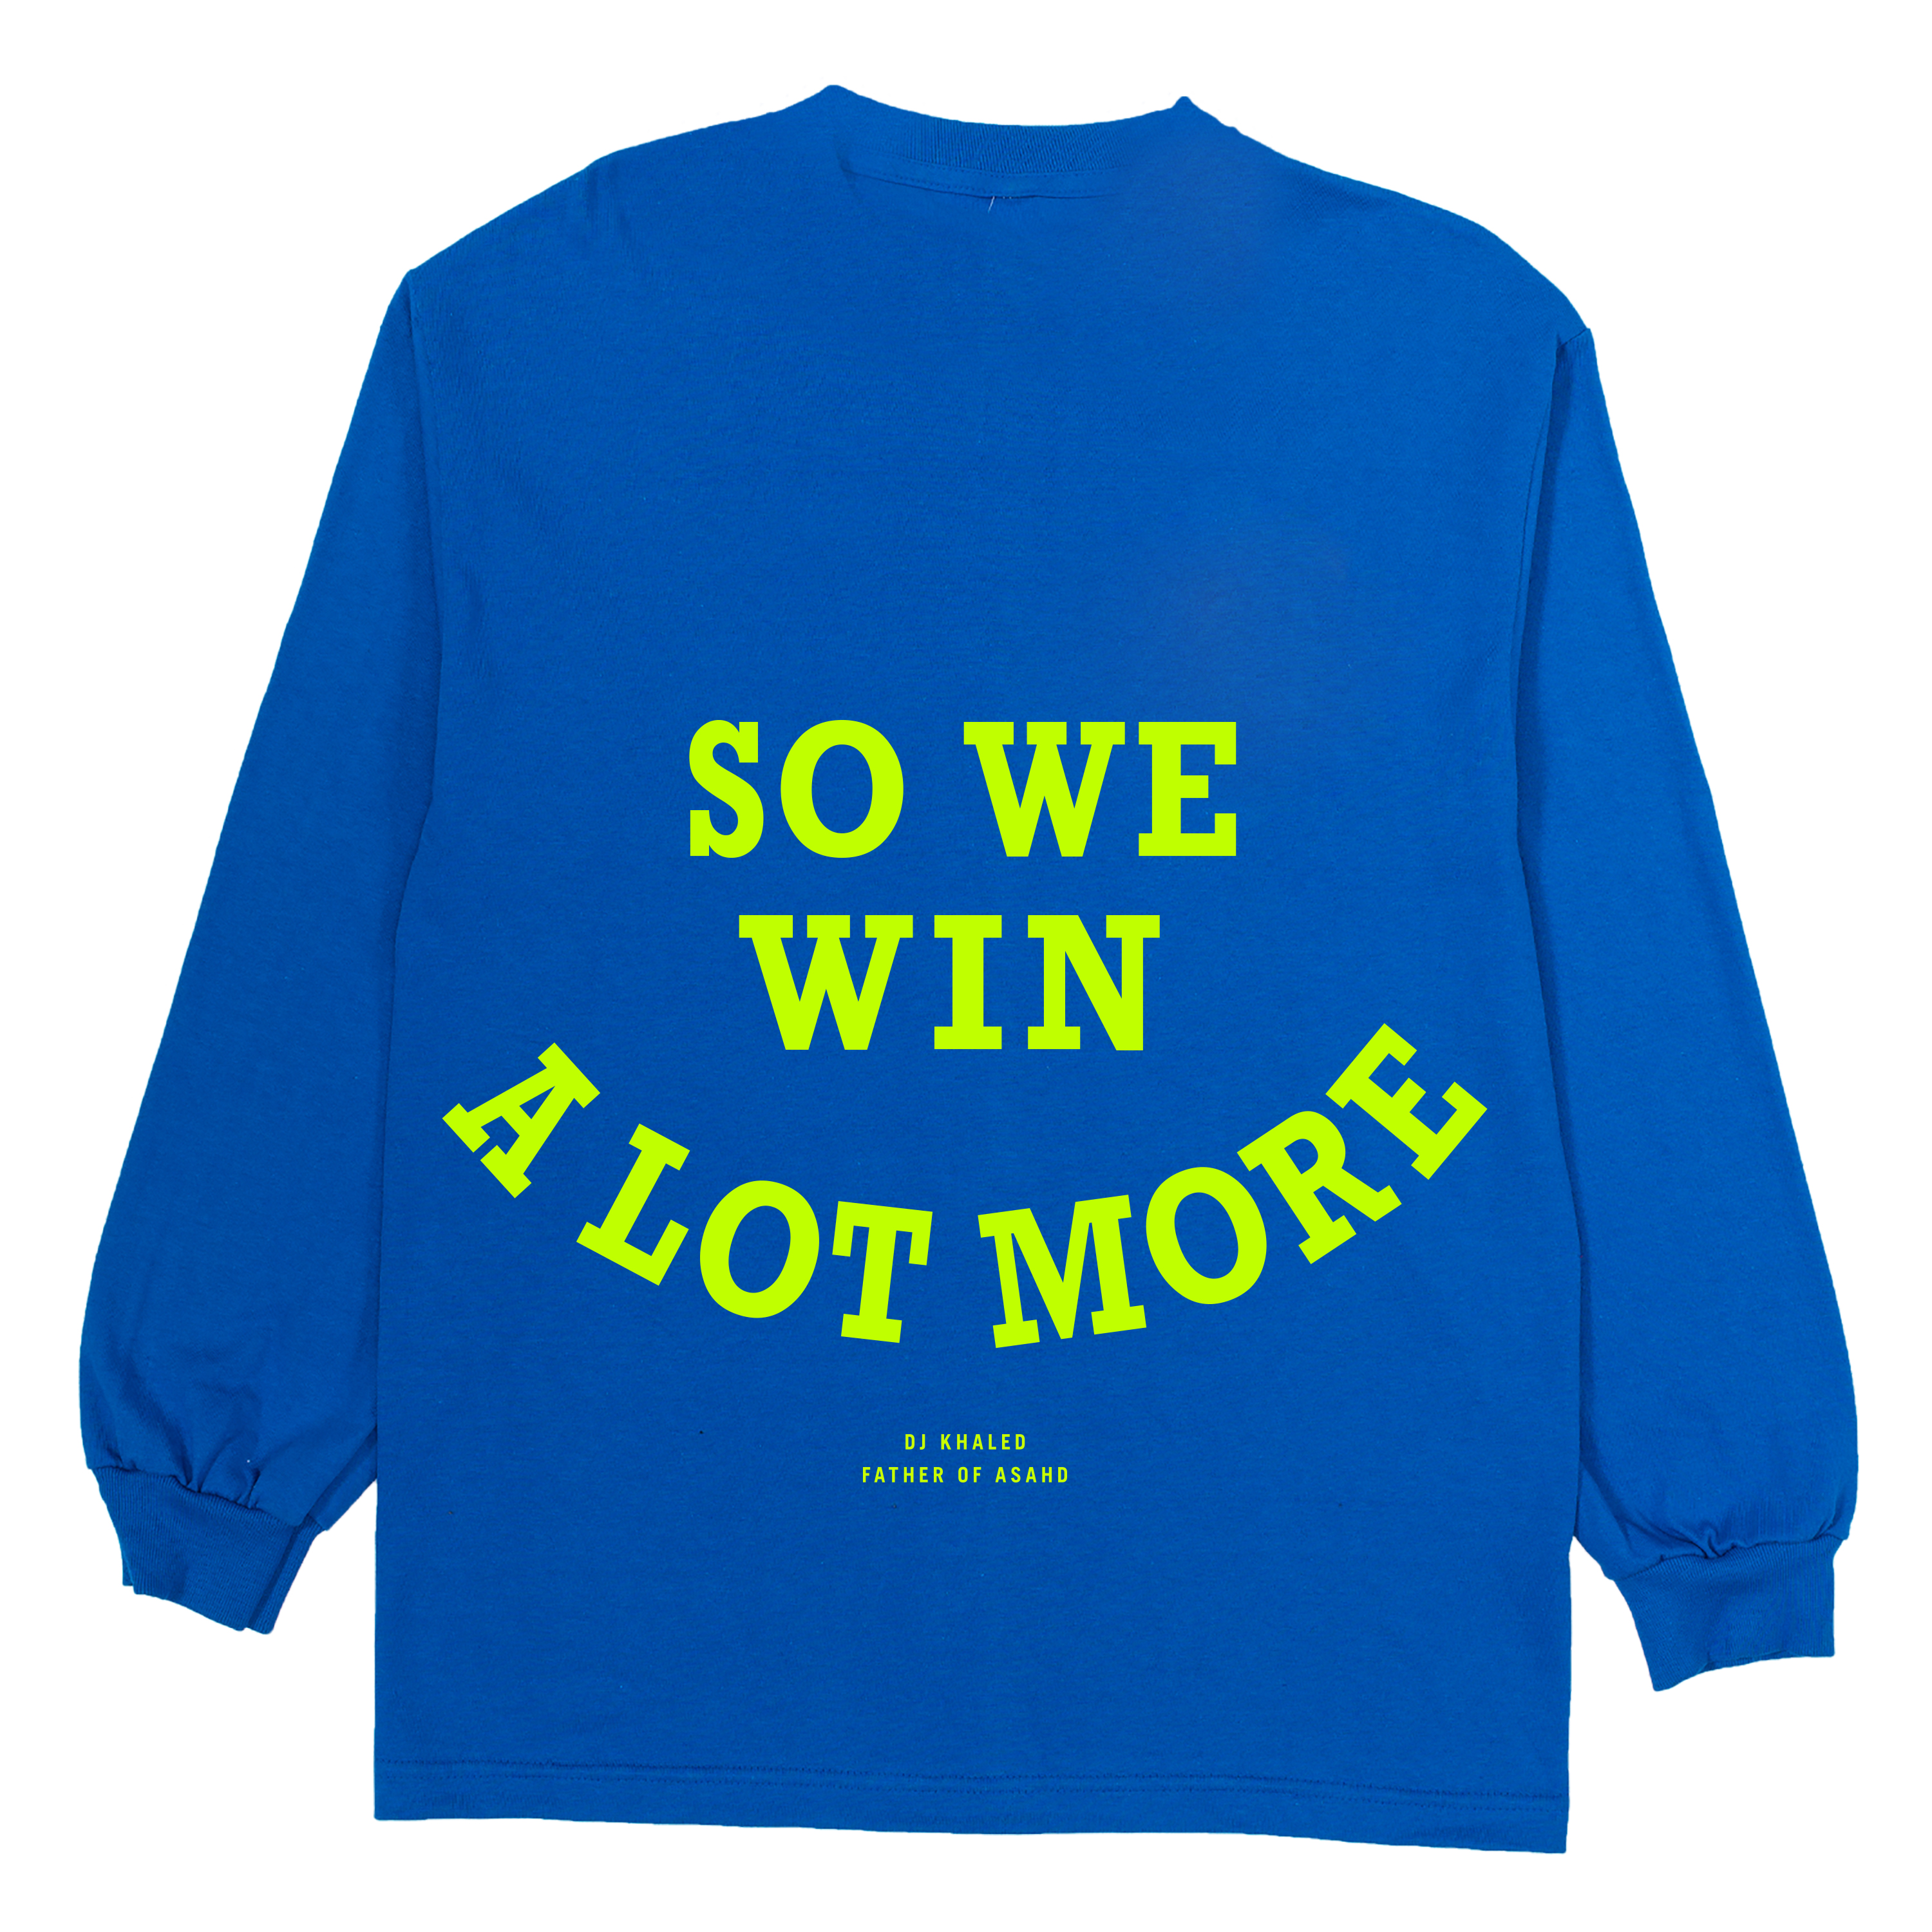 They Don't Want You To Win Blue Long-Sleeve T-Shirt + Father of Asahd Album Download